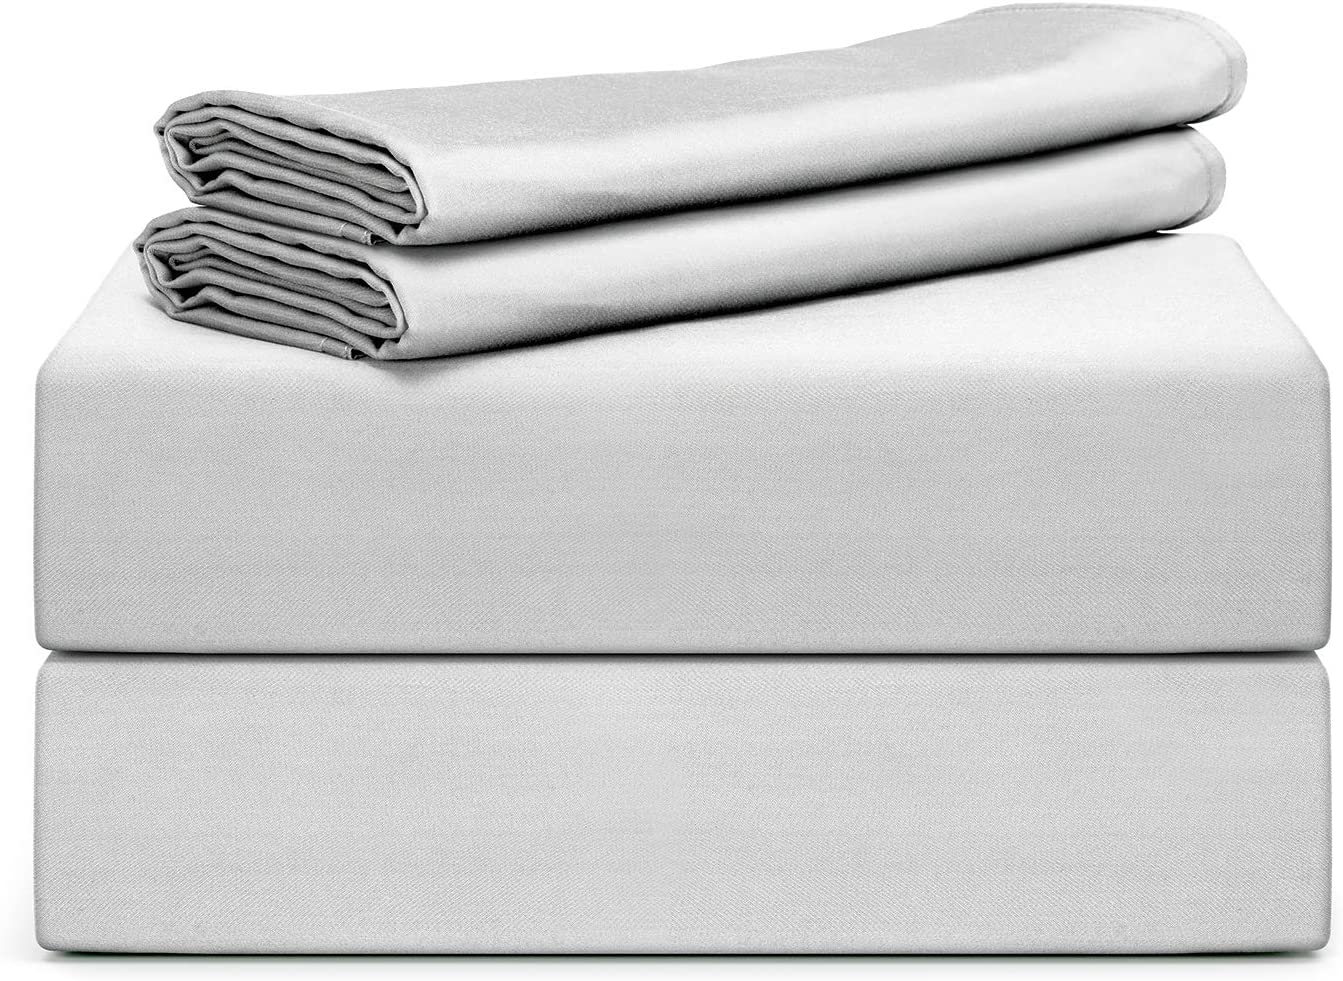 """Tafts Bamboo Sheets Full Size - 100% Pure Organic Viscose Bamboo Sheet Set - 400TC Bamboo Bed Sheets - 3 Pieces - 17"""" Deep Pocket - Silk Feel, Cooling, Anti-Static, Hypoallergenic (Light Grey)"""